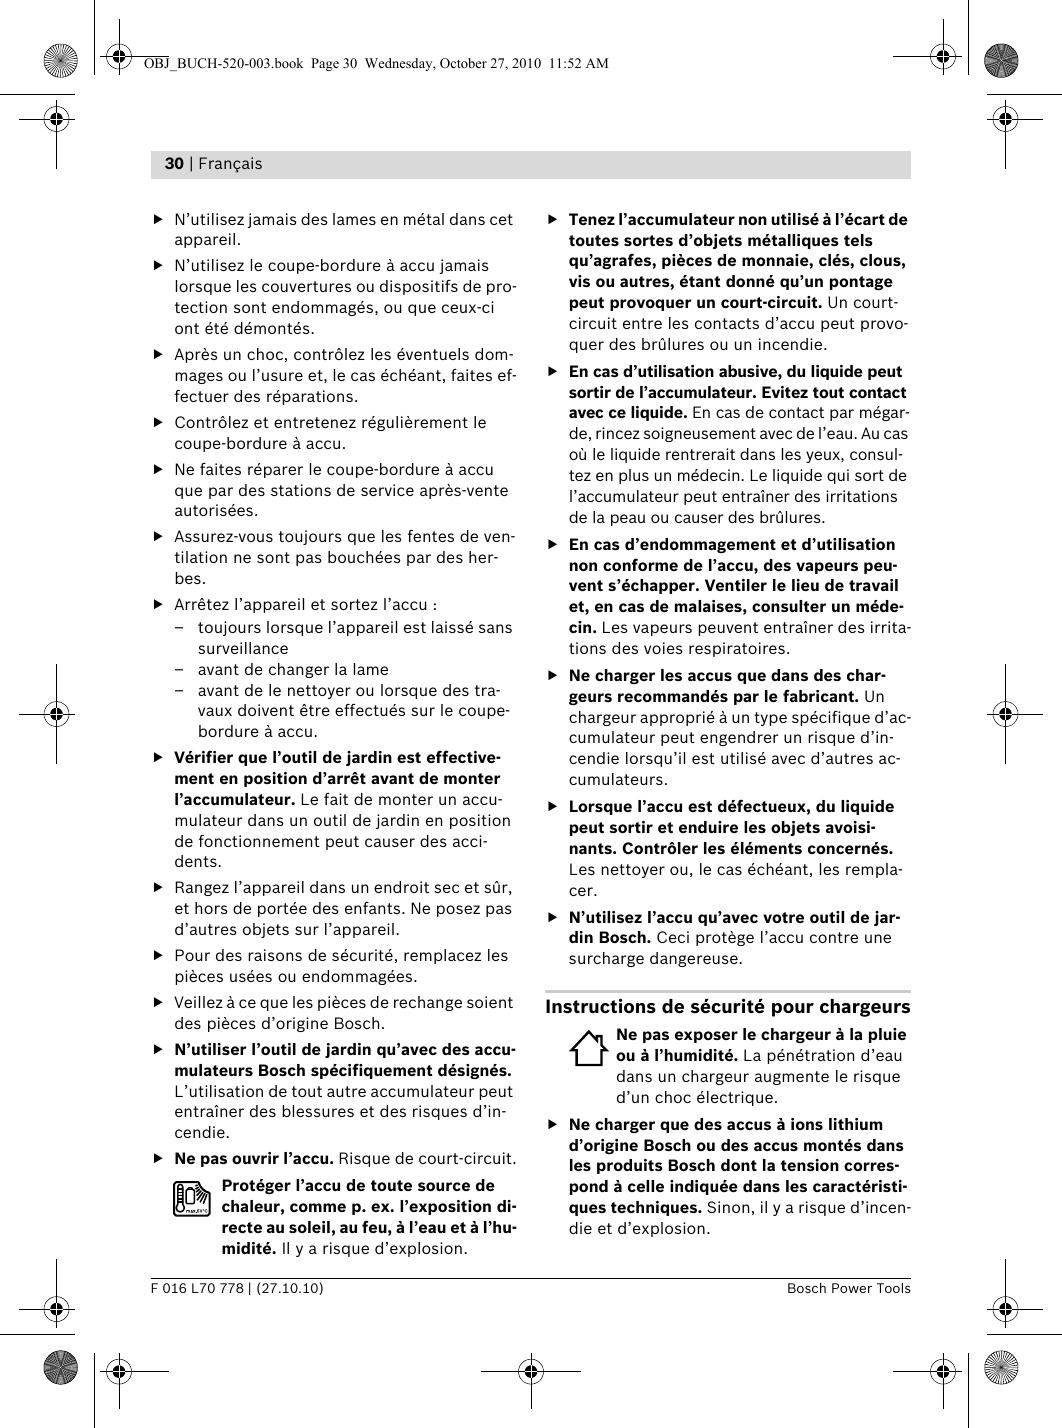 Art26LiManual User Guide Page 30